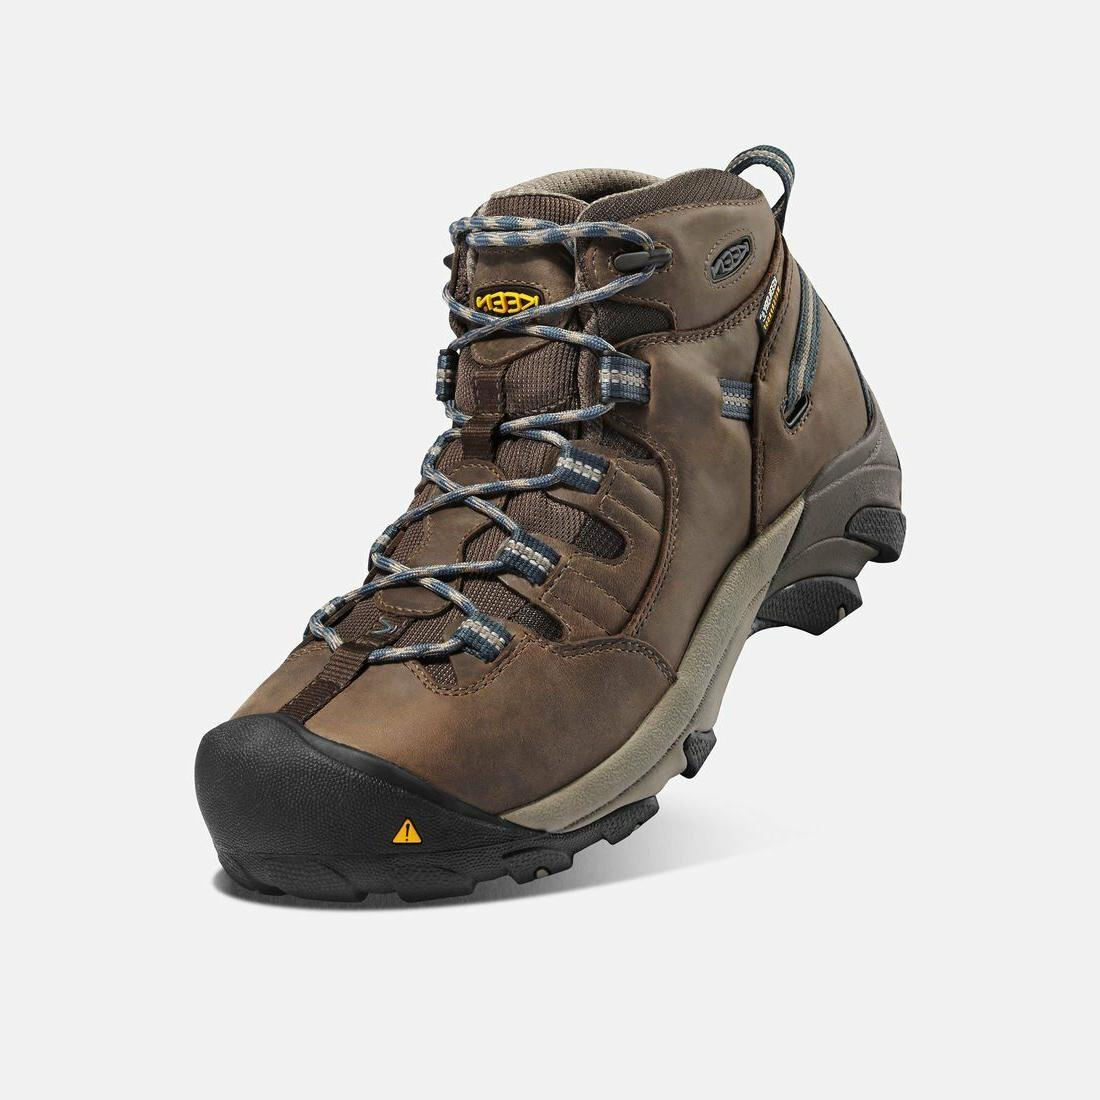 Keen Detroit Steel Toe Work Boot #1007004  ......Save 43%